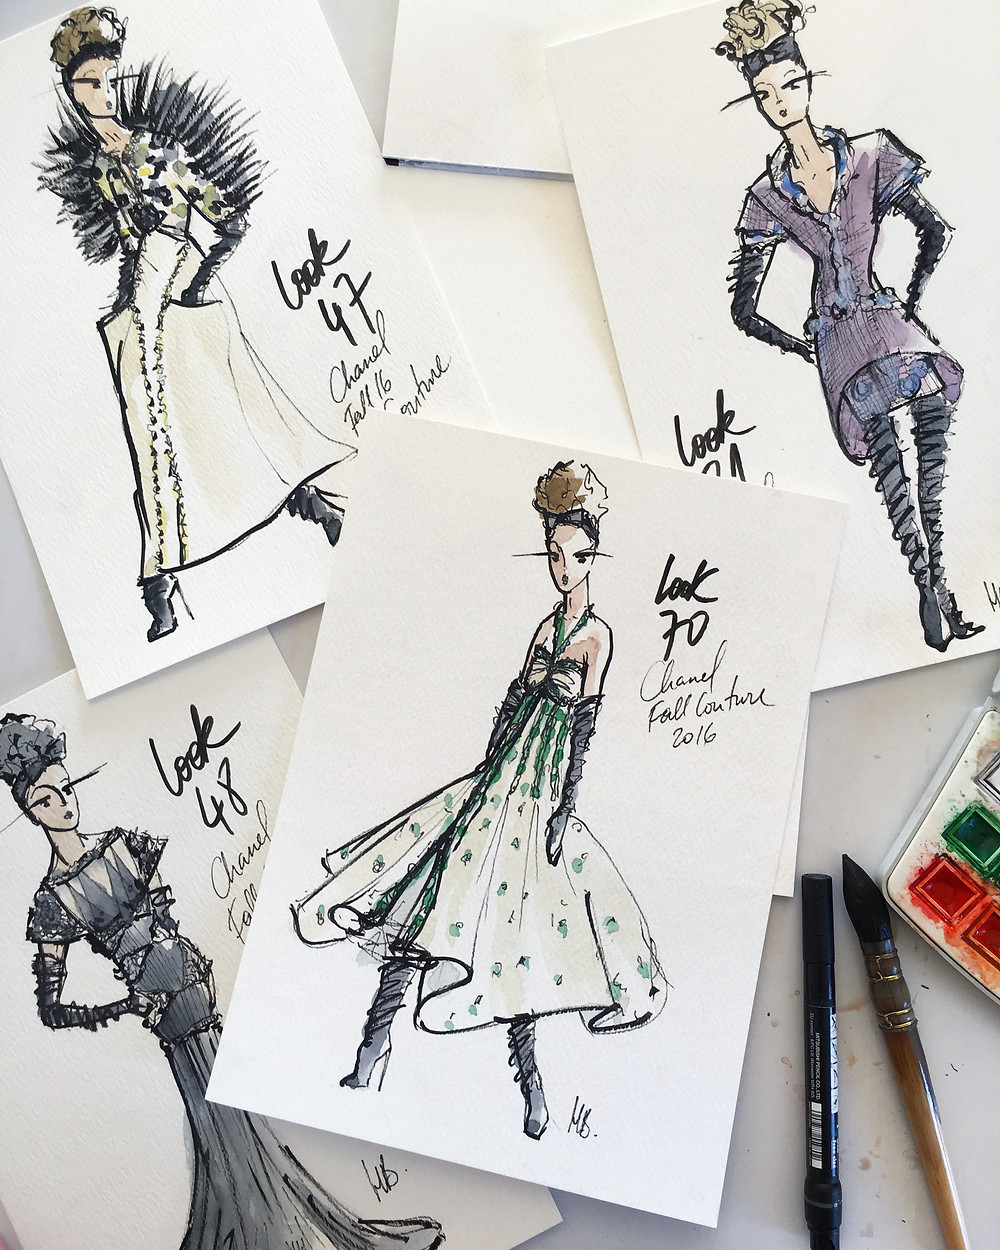 Sketchbook - Chanel Couture Hiver 2016 - Chanel Couture Fall 2016 - Paris - Illustrations Habile Buston